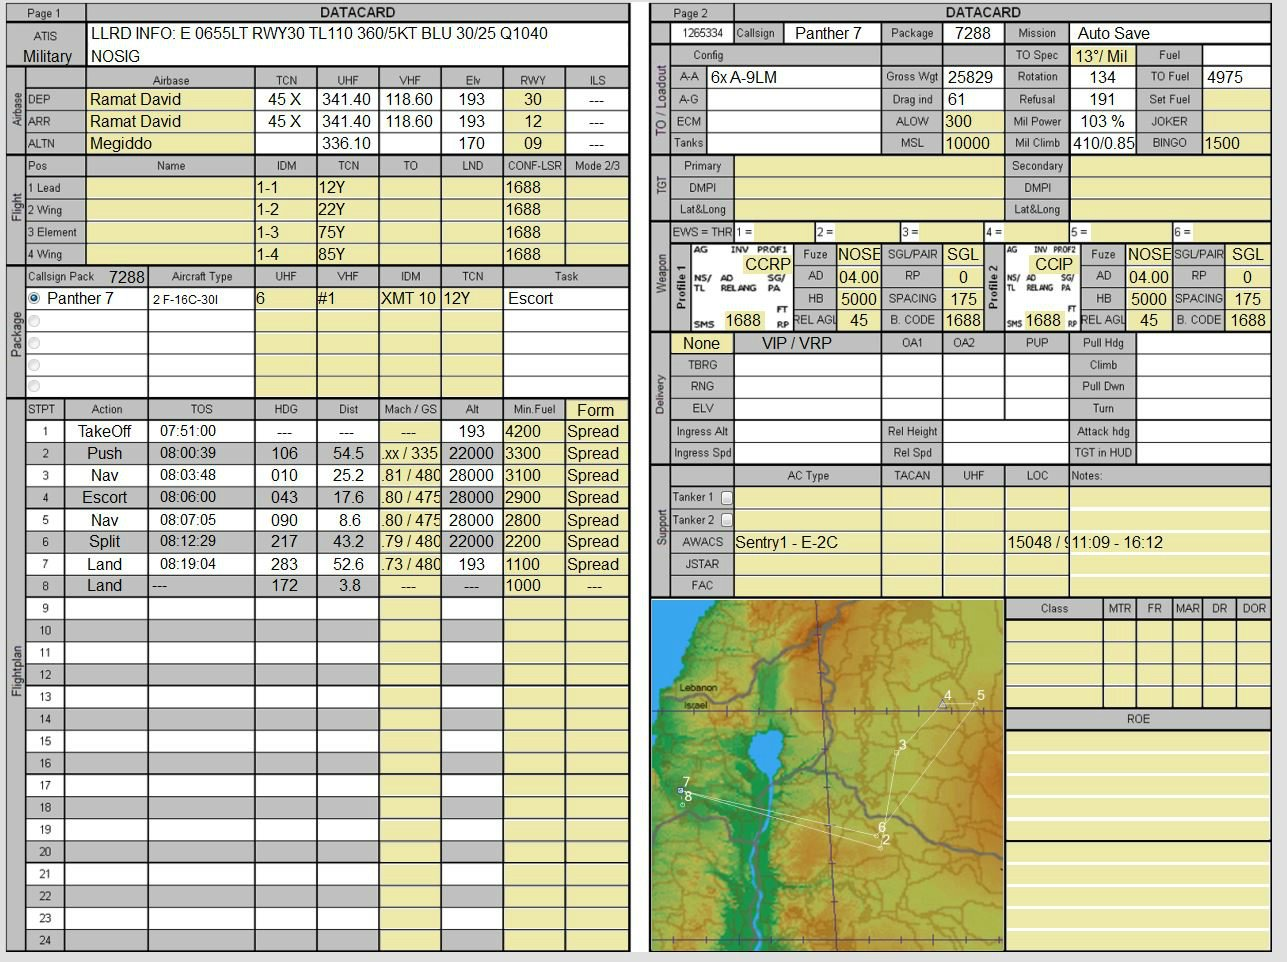 Weapon Delivery Planner 3.7.4 build 76